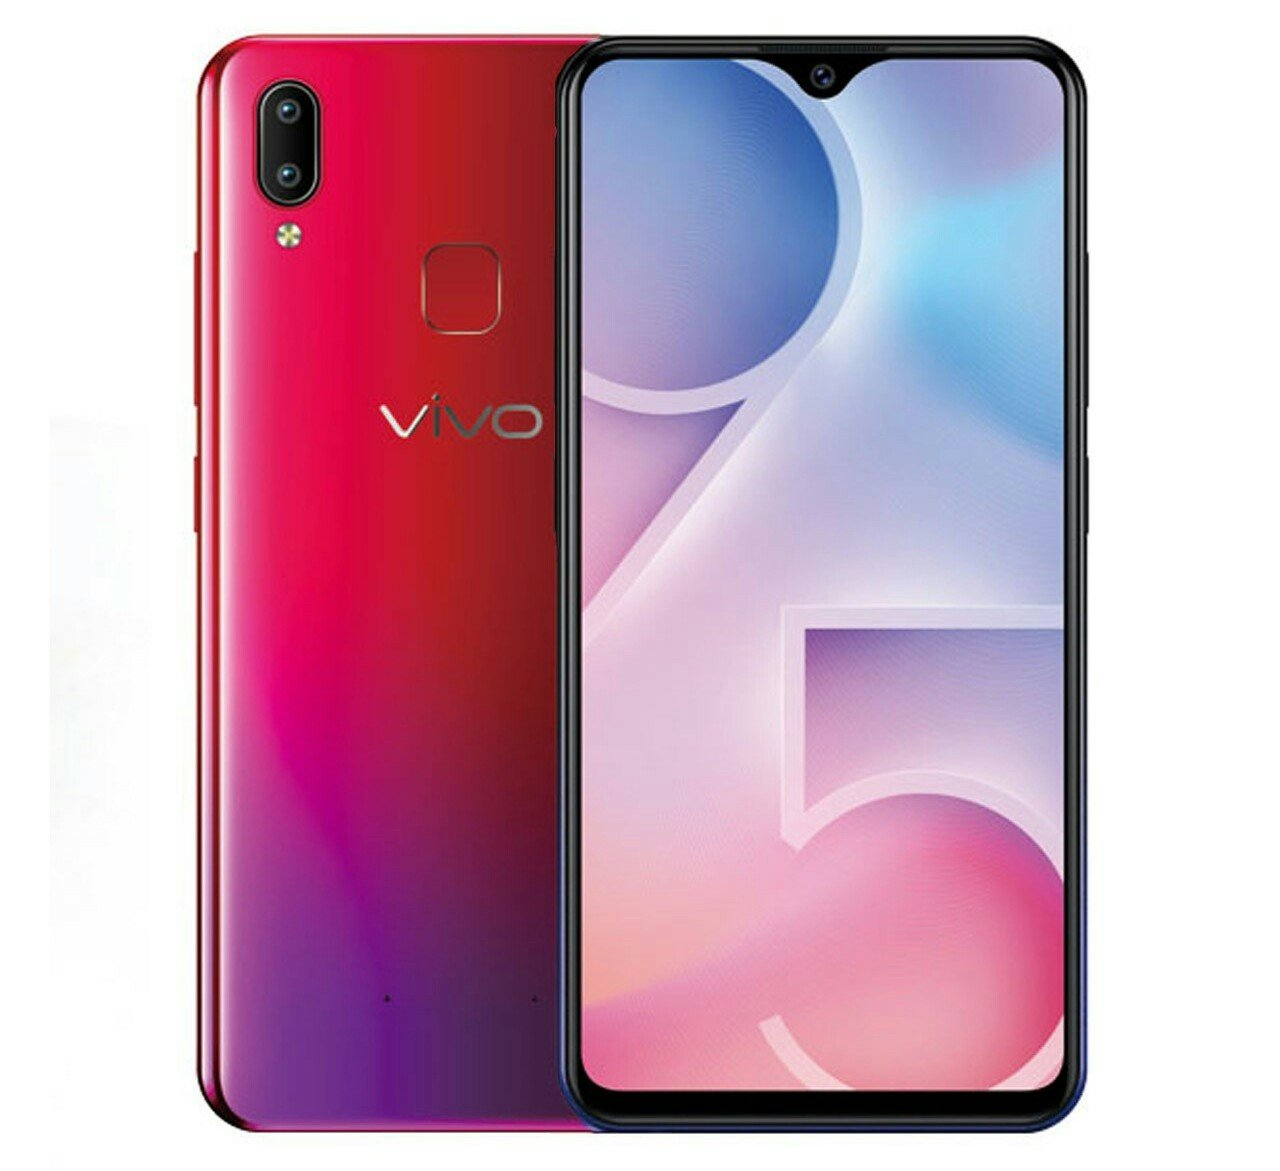 Vivo Y95 specifications features and price